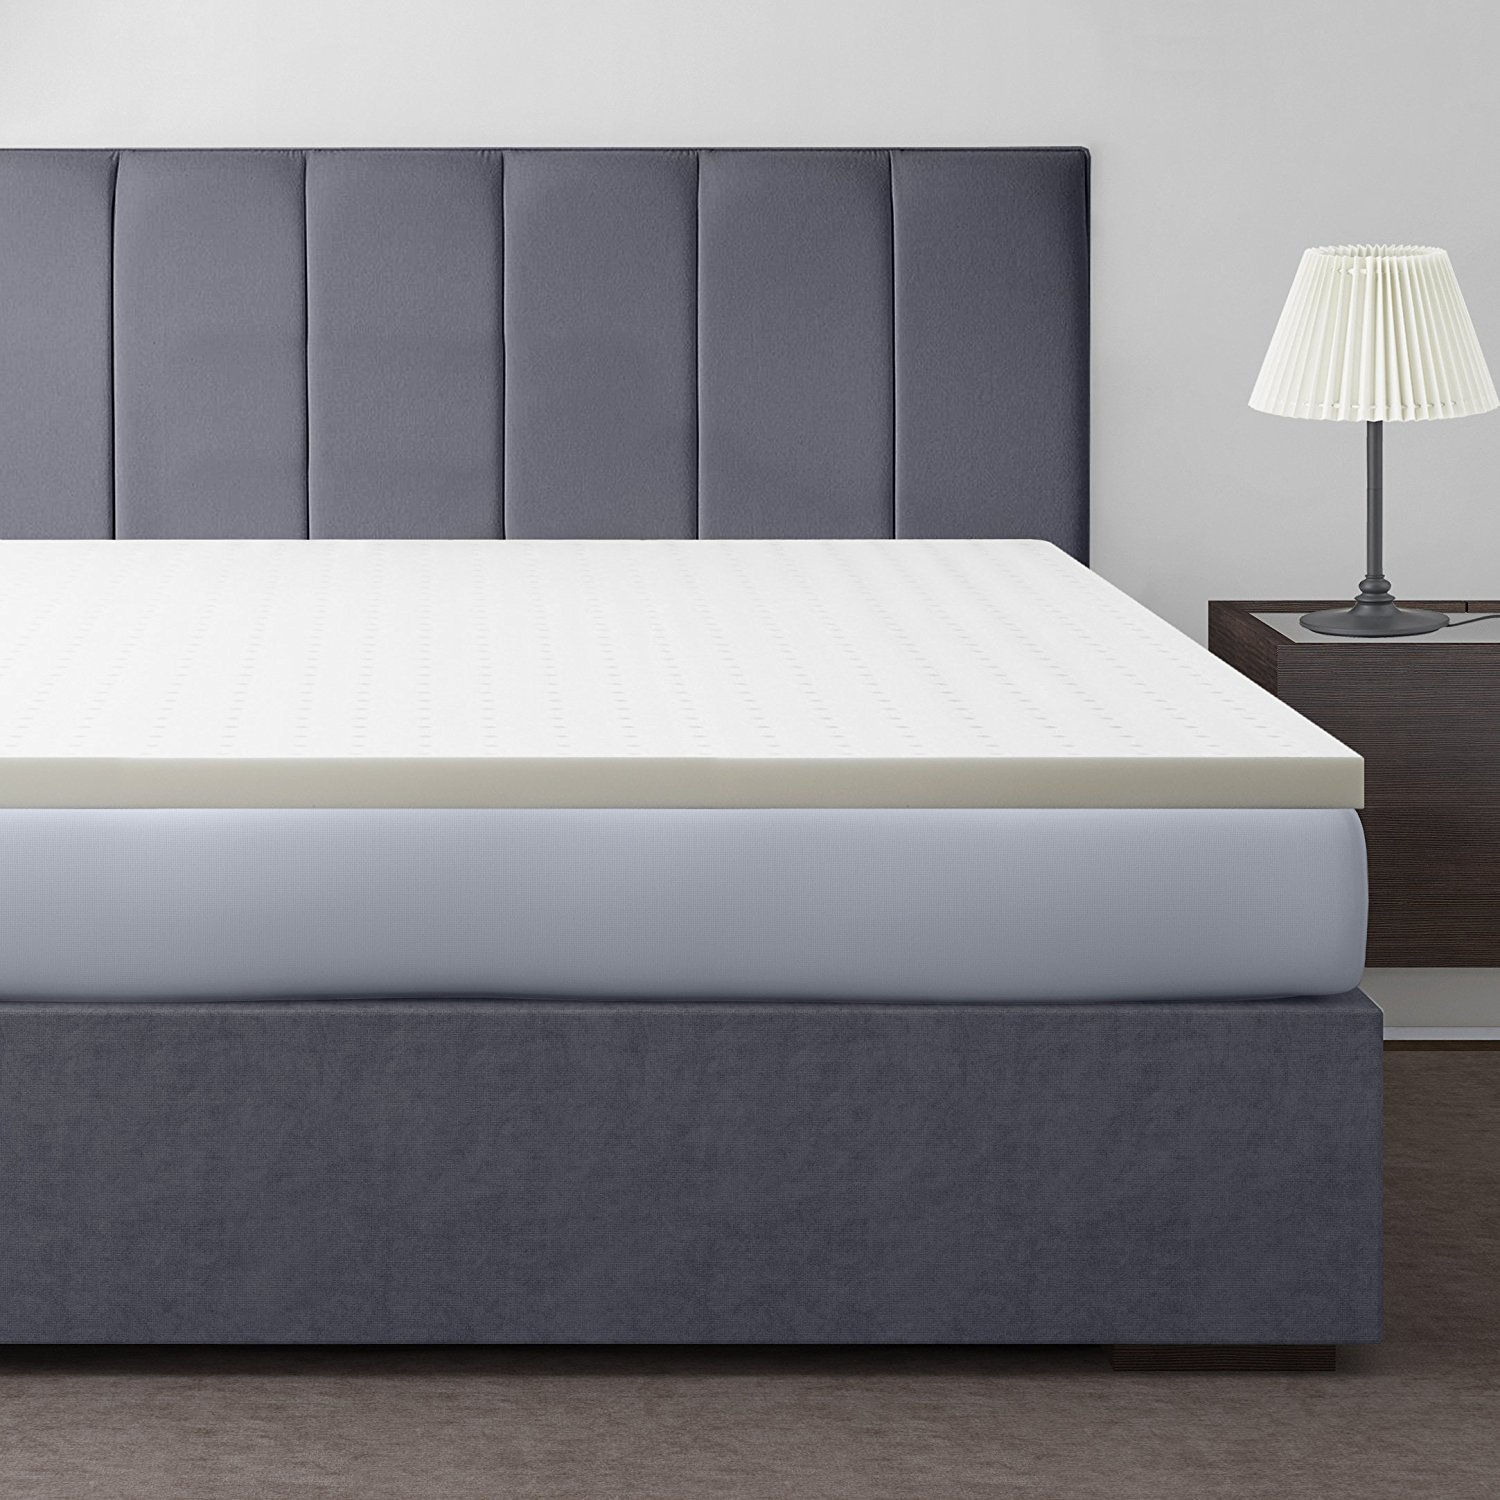 Inexpensive Full Size Mattress Cheap Full Size Foam Mattress Topper Find Full Size Foam Mattress